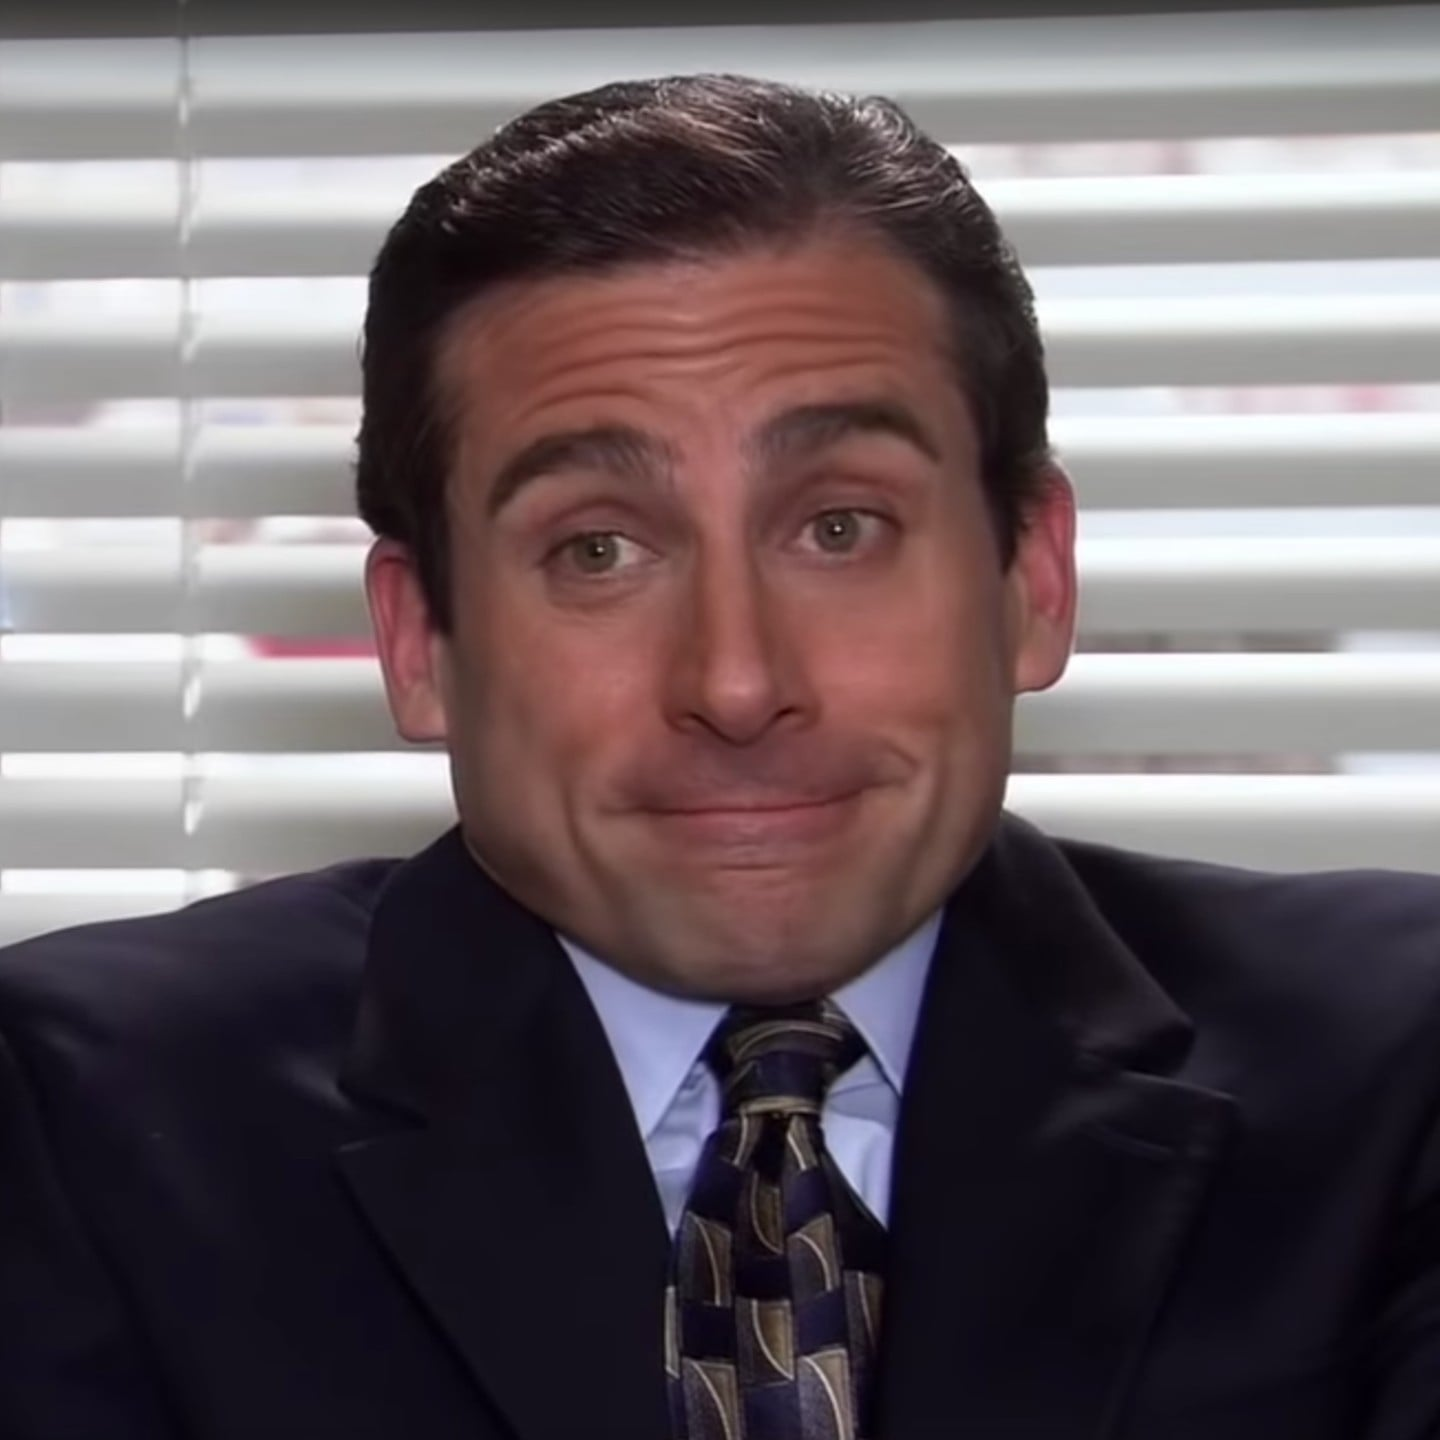 Michael Scott Misquotations on The Office Video | POPSUGAR